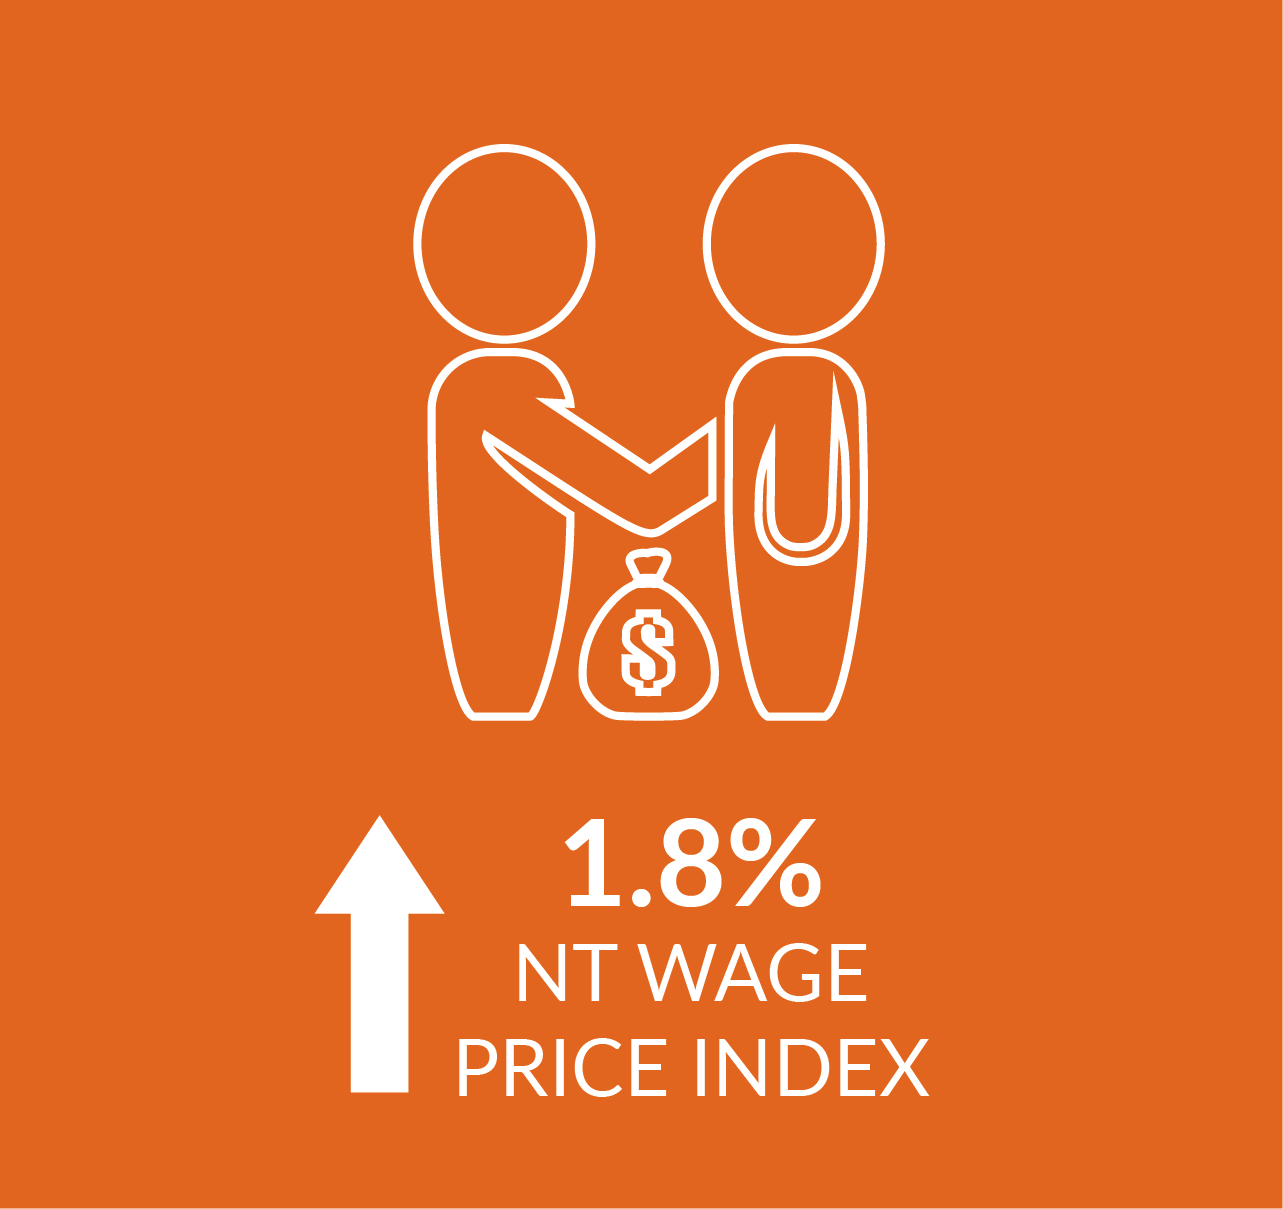 Infographic showing wage price index